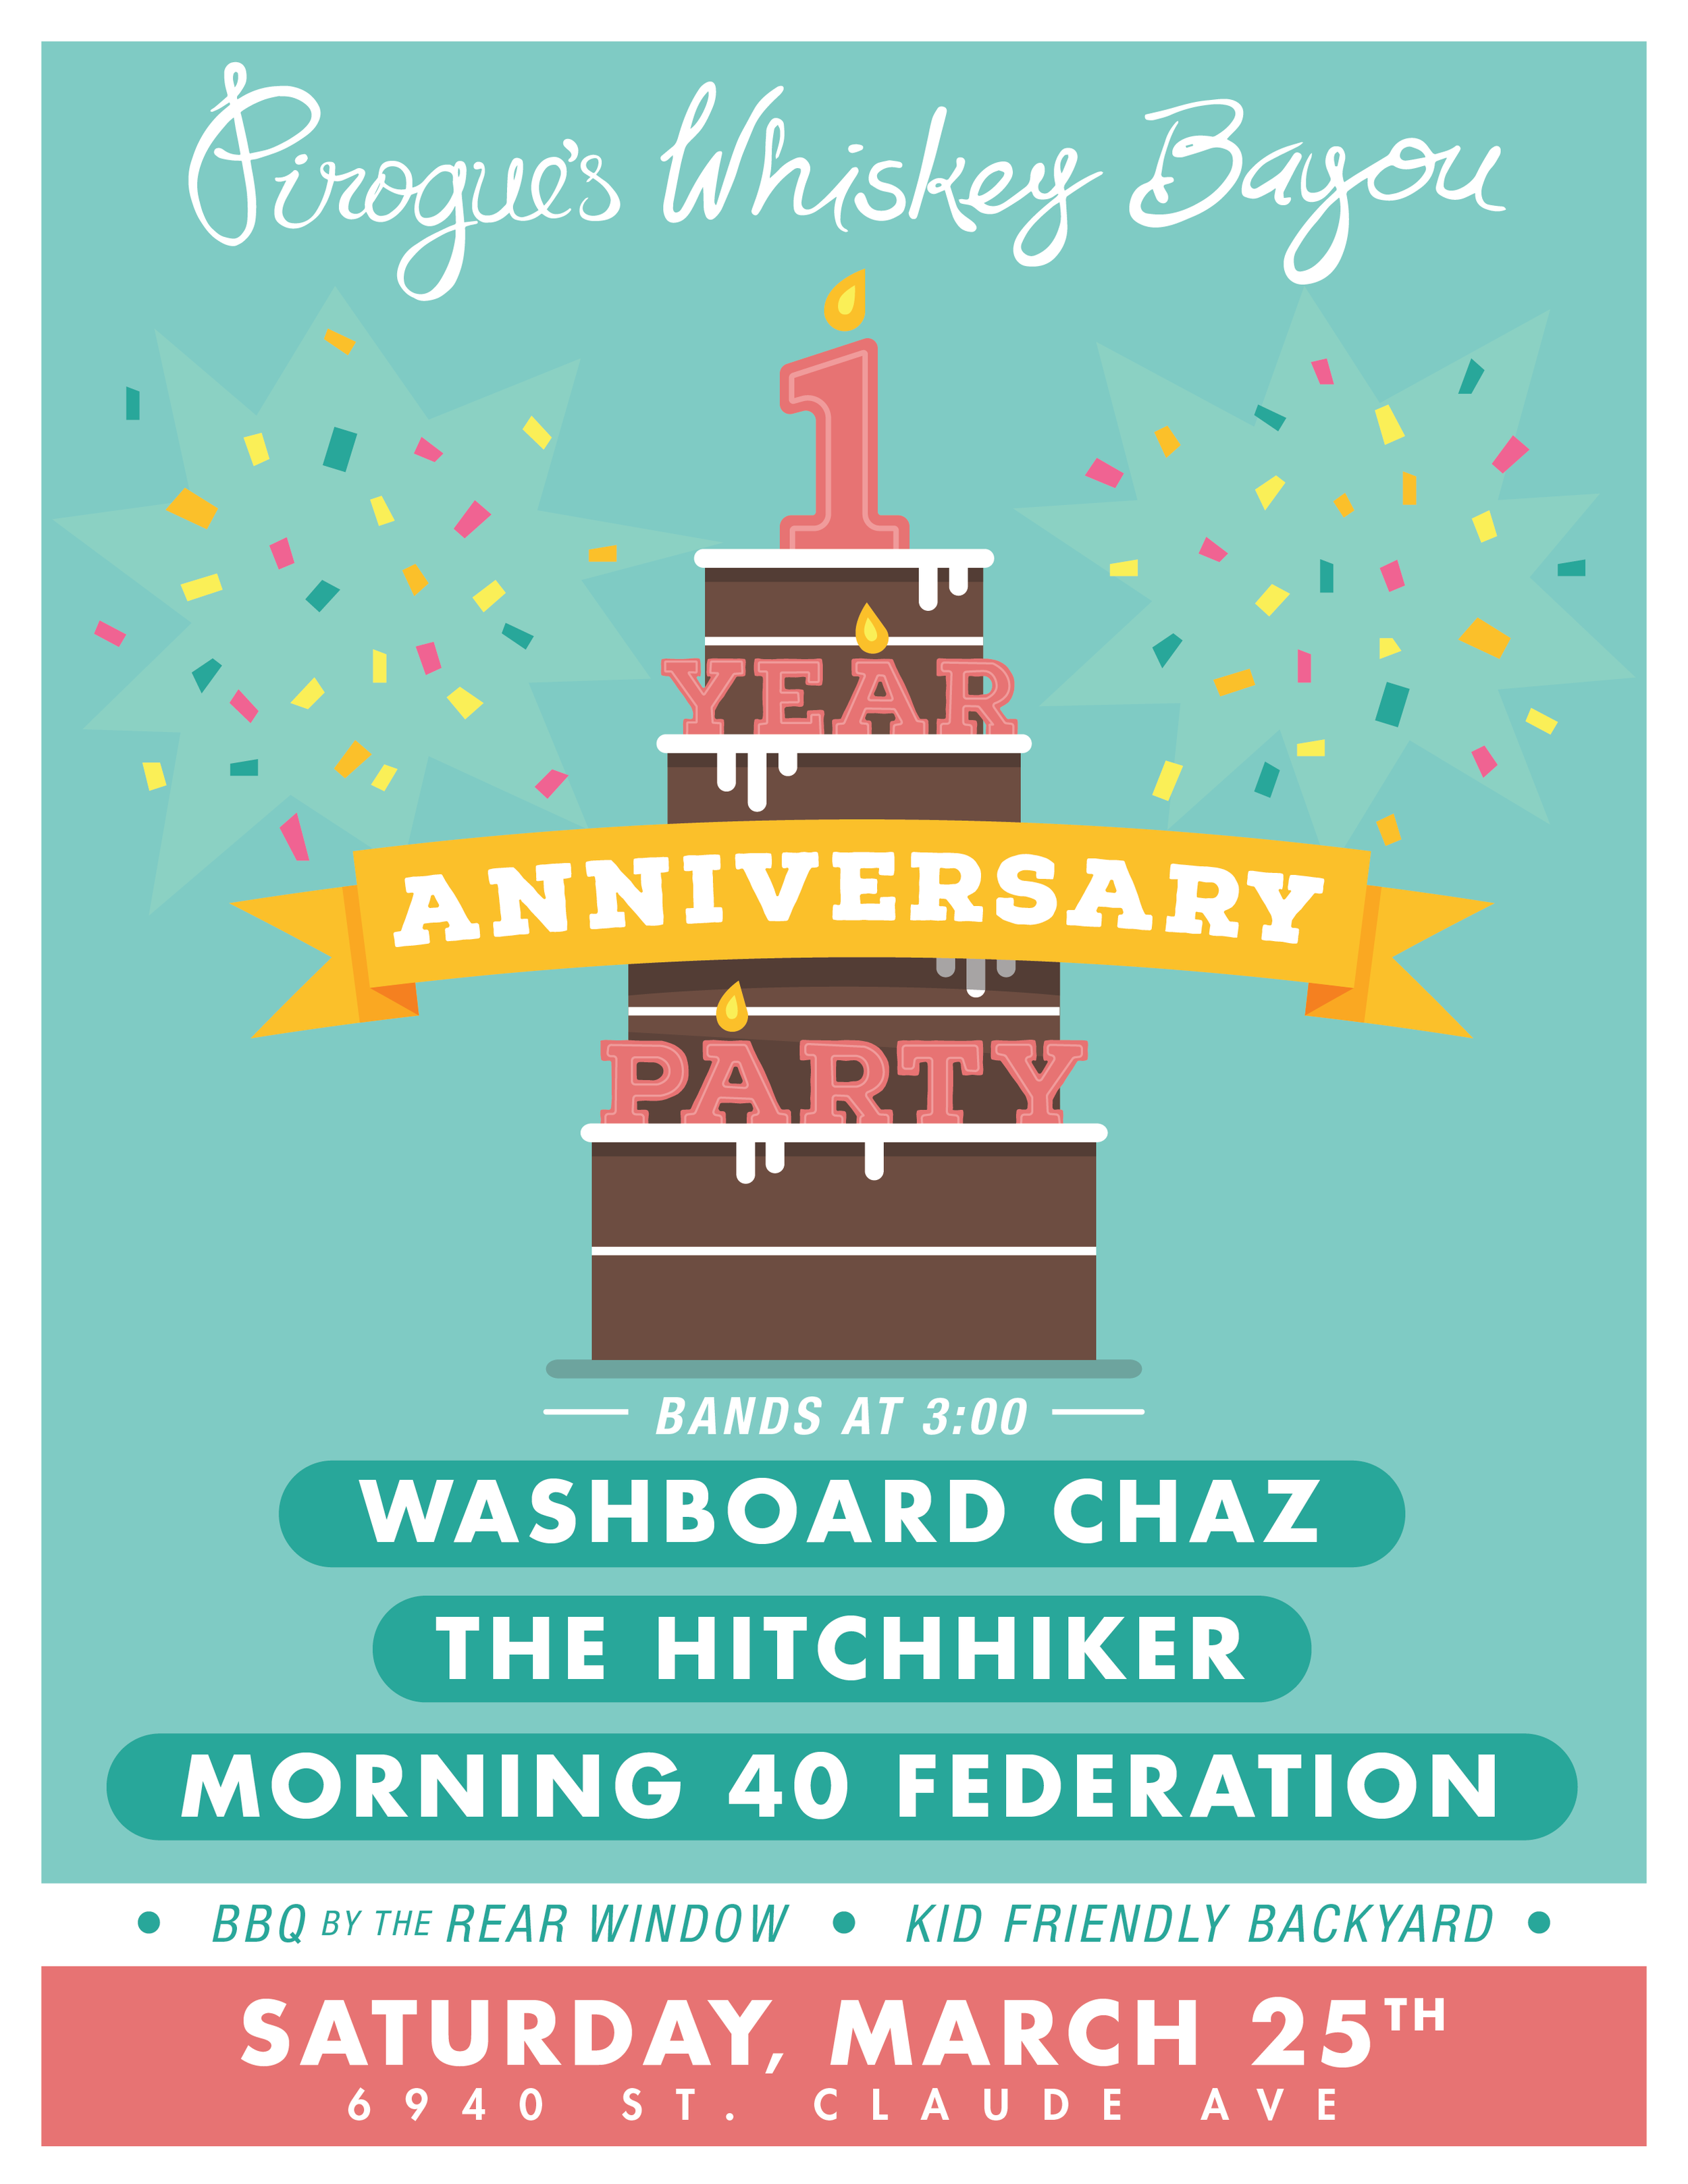 PWB-10-ANNIVERSARY-003.png